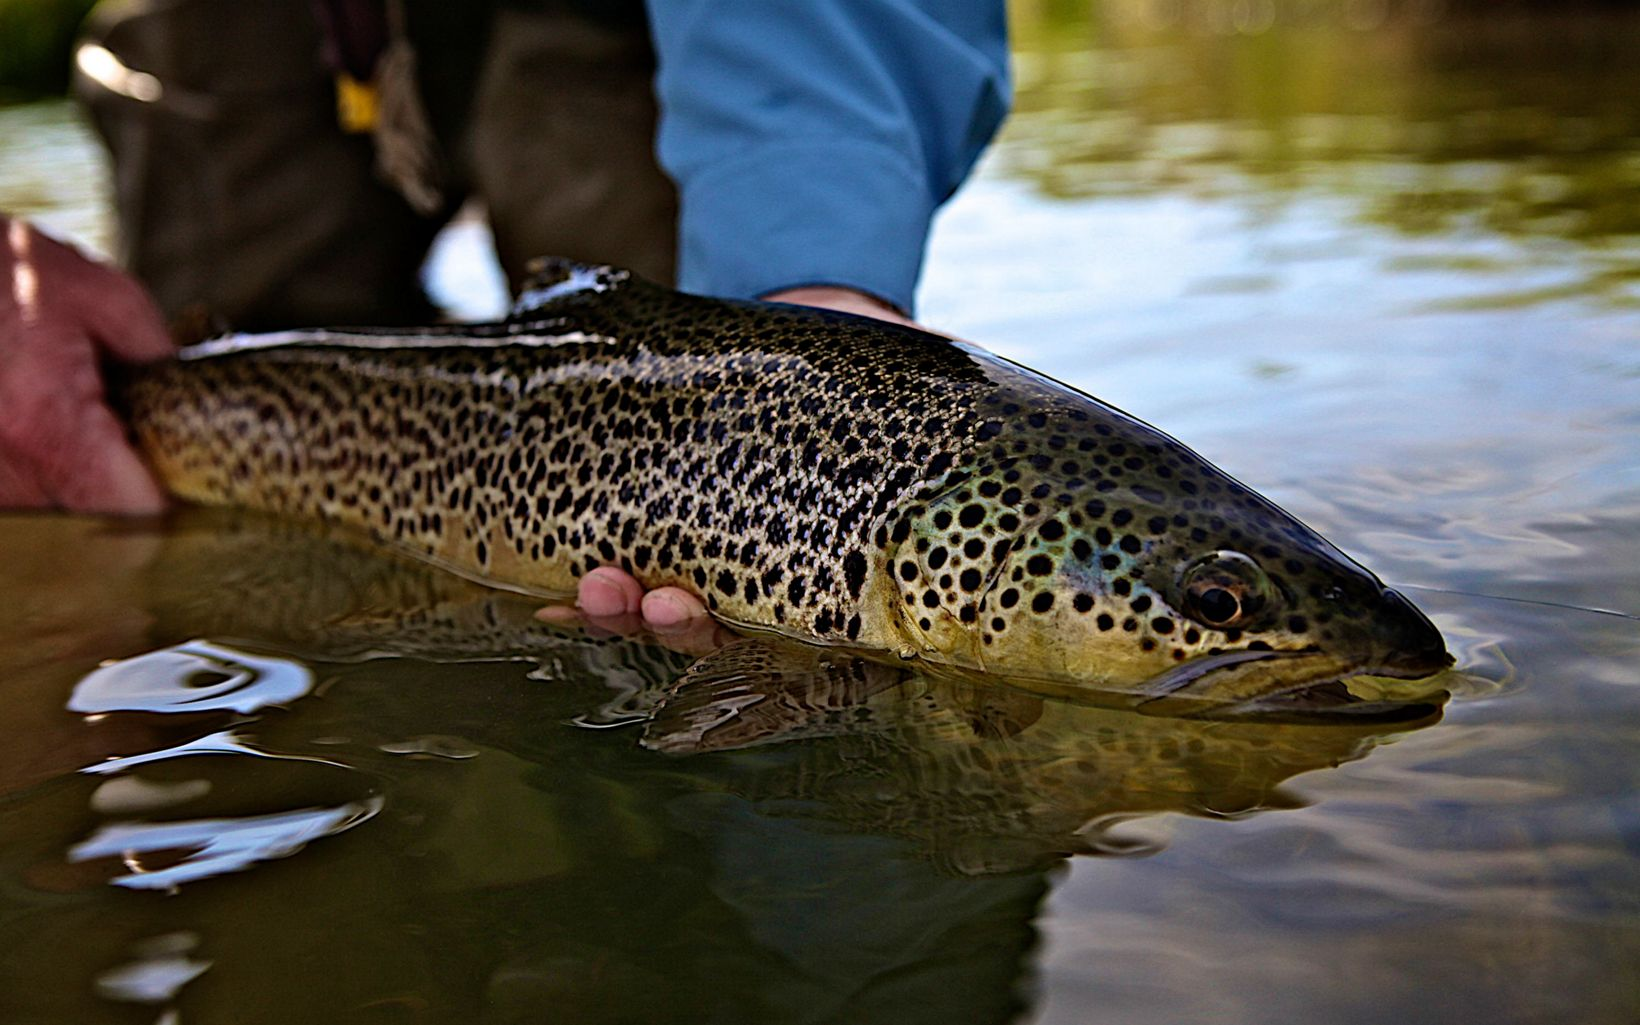 A closeup of a large brown and black trout with shimmery, spotted skin, being held in the water by an angler.